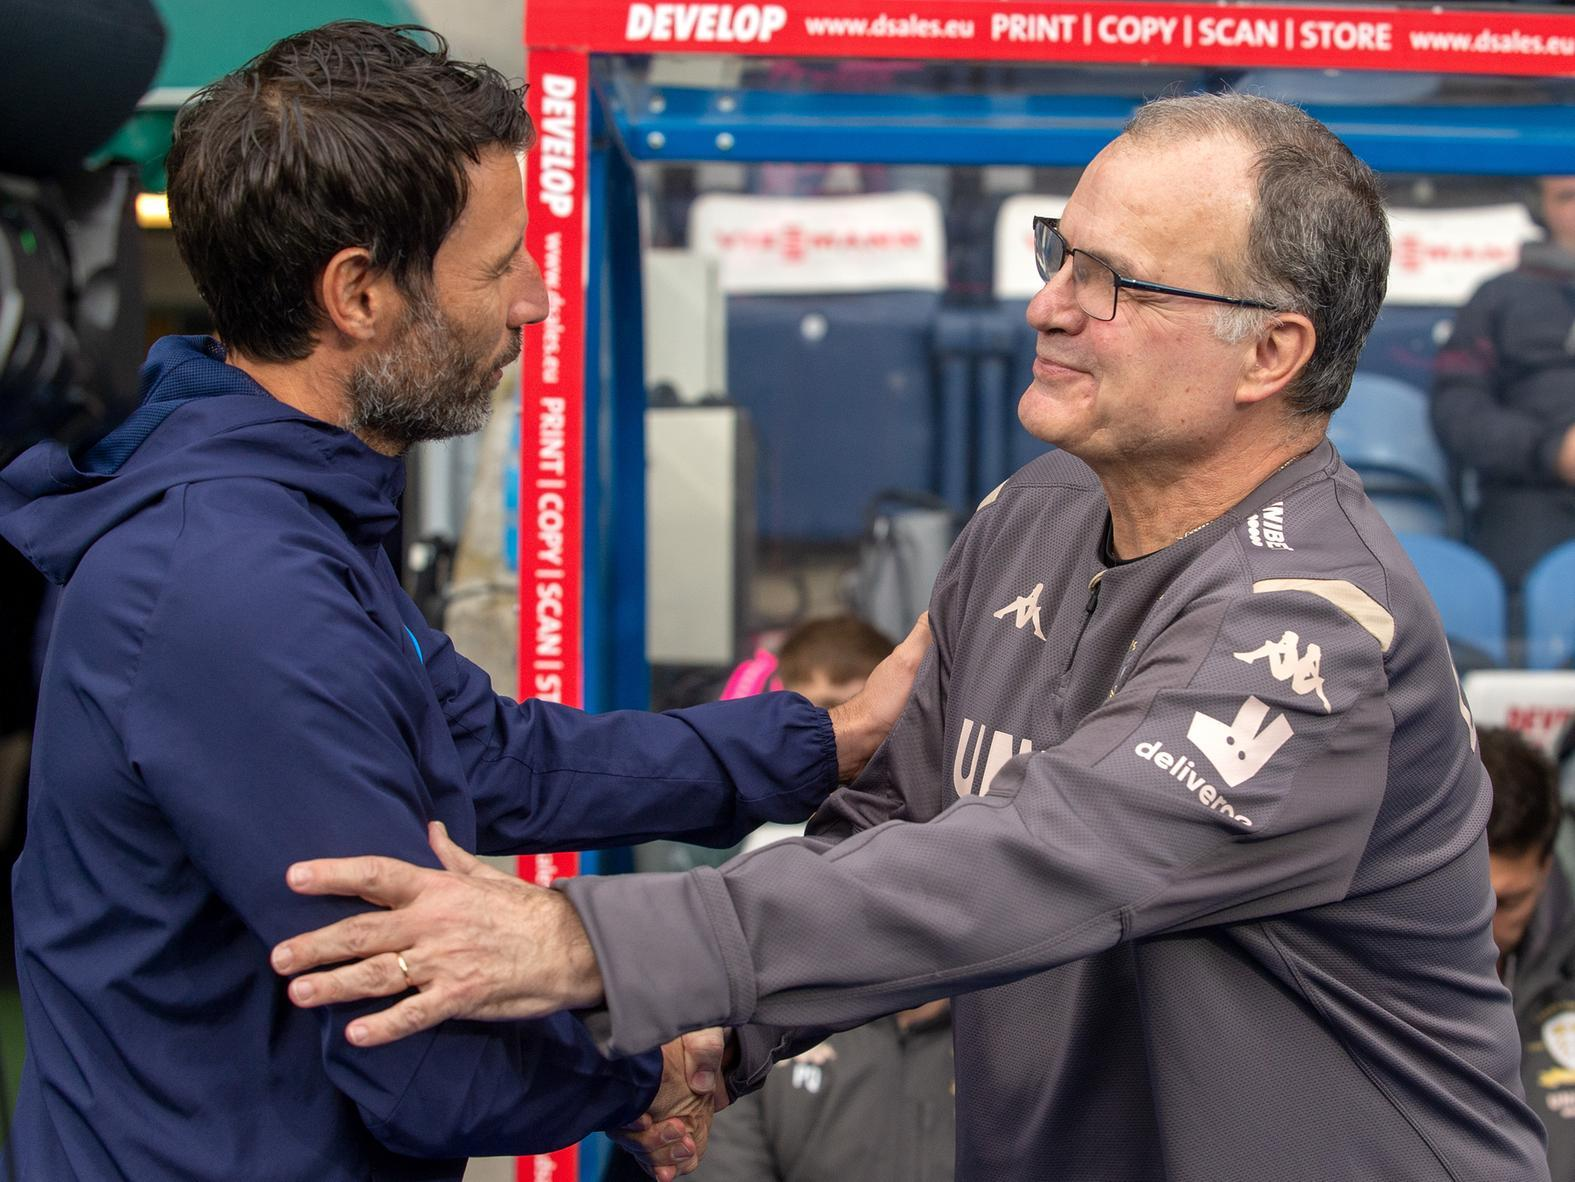 'They won't fall short this season' - Huddersfield Town boss Danny Cowley on 'pioneer' Marcelo Bielsa and his Leeds United side